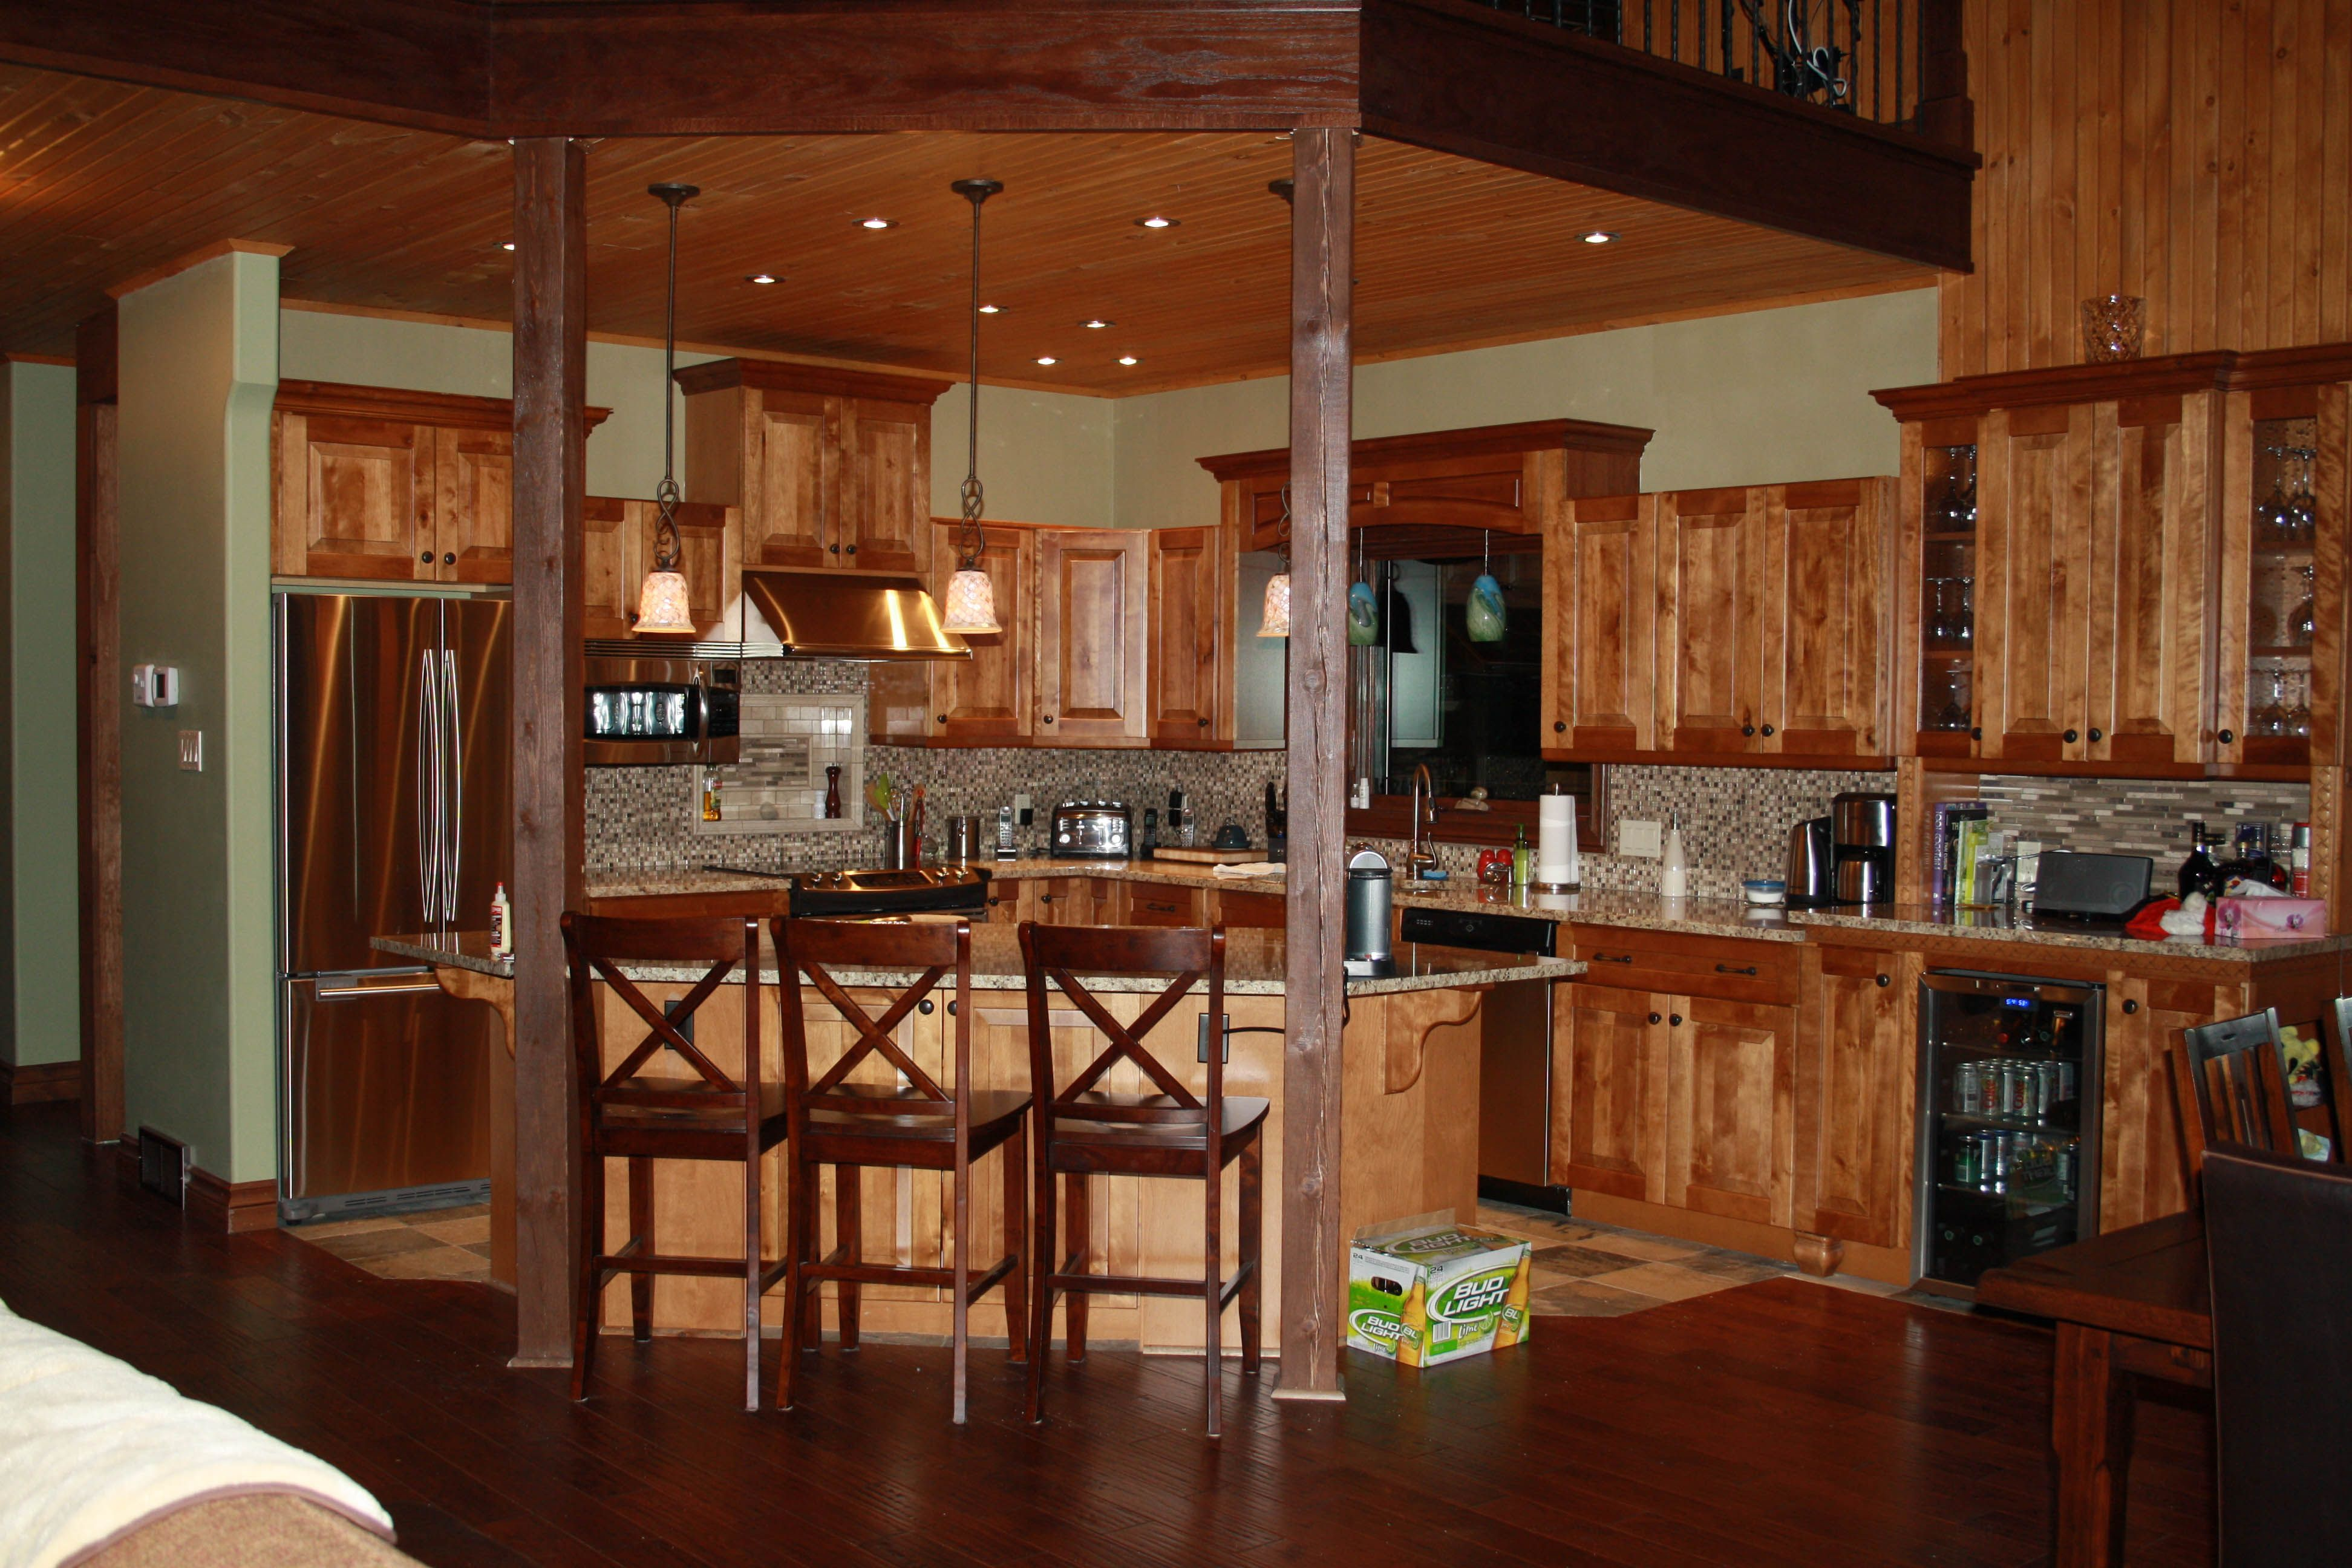 striking kitchen design finished in modern design of luxury log home plans interior design with wood dominated kitchen design idea - Log House Plans With Interior Photos